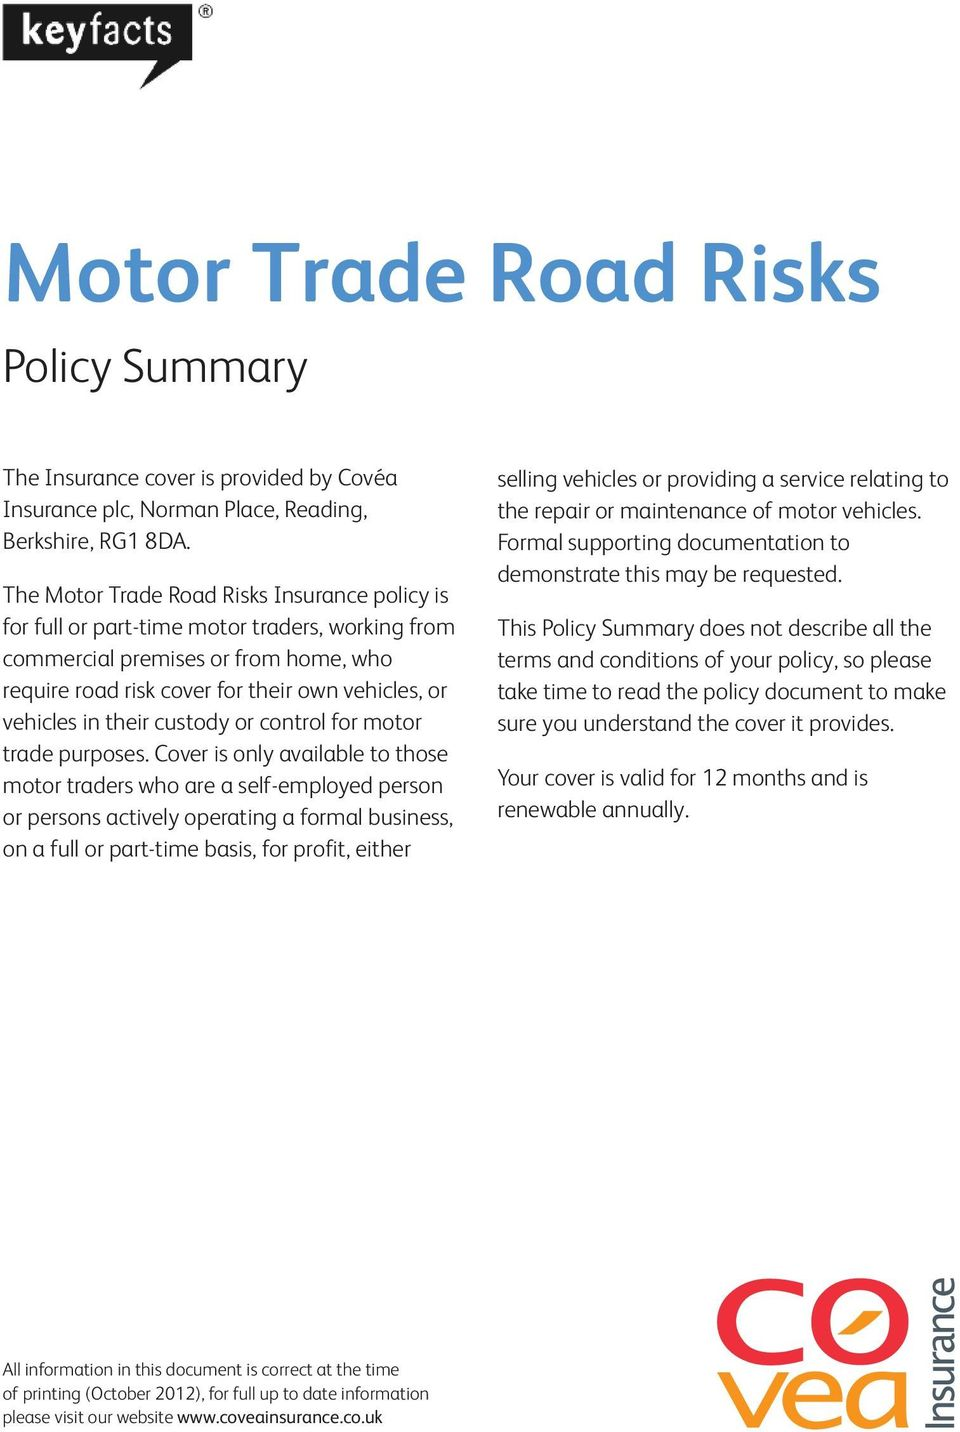 their custody or control for motor trade purposes.